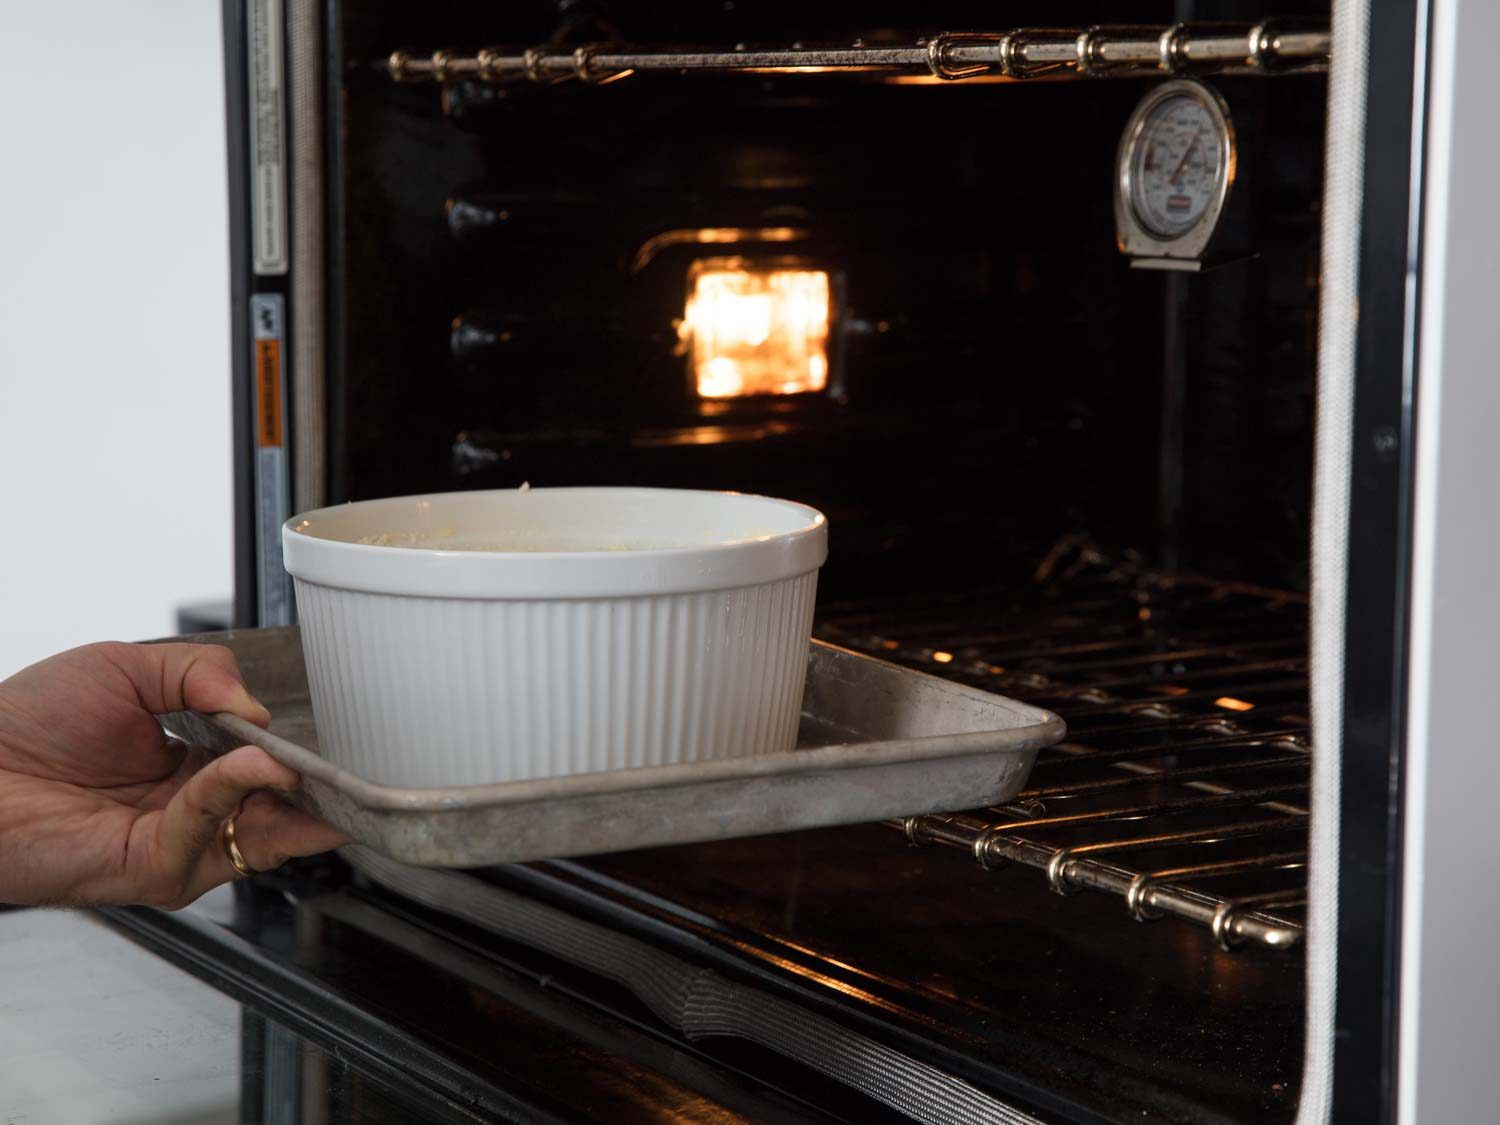 putting the cheese soufflé in the oven.